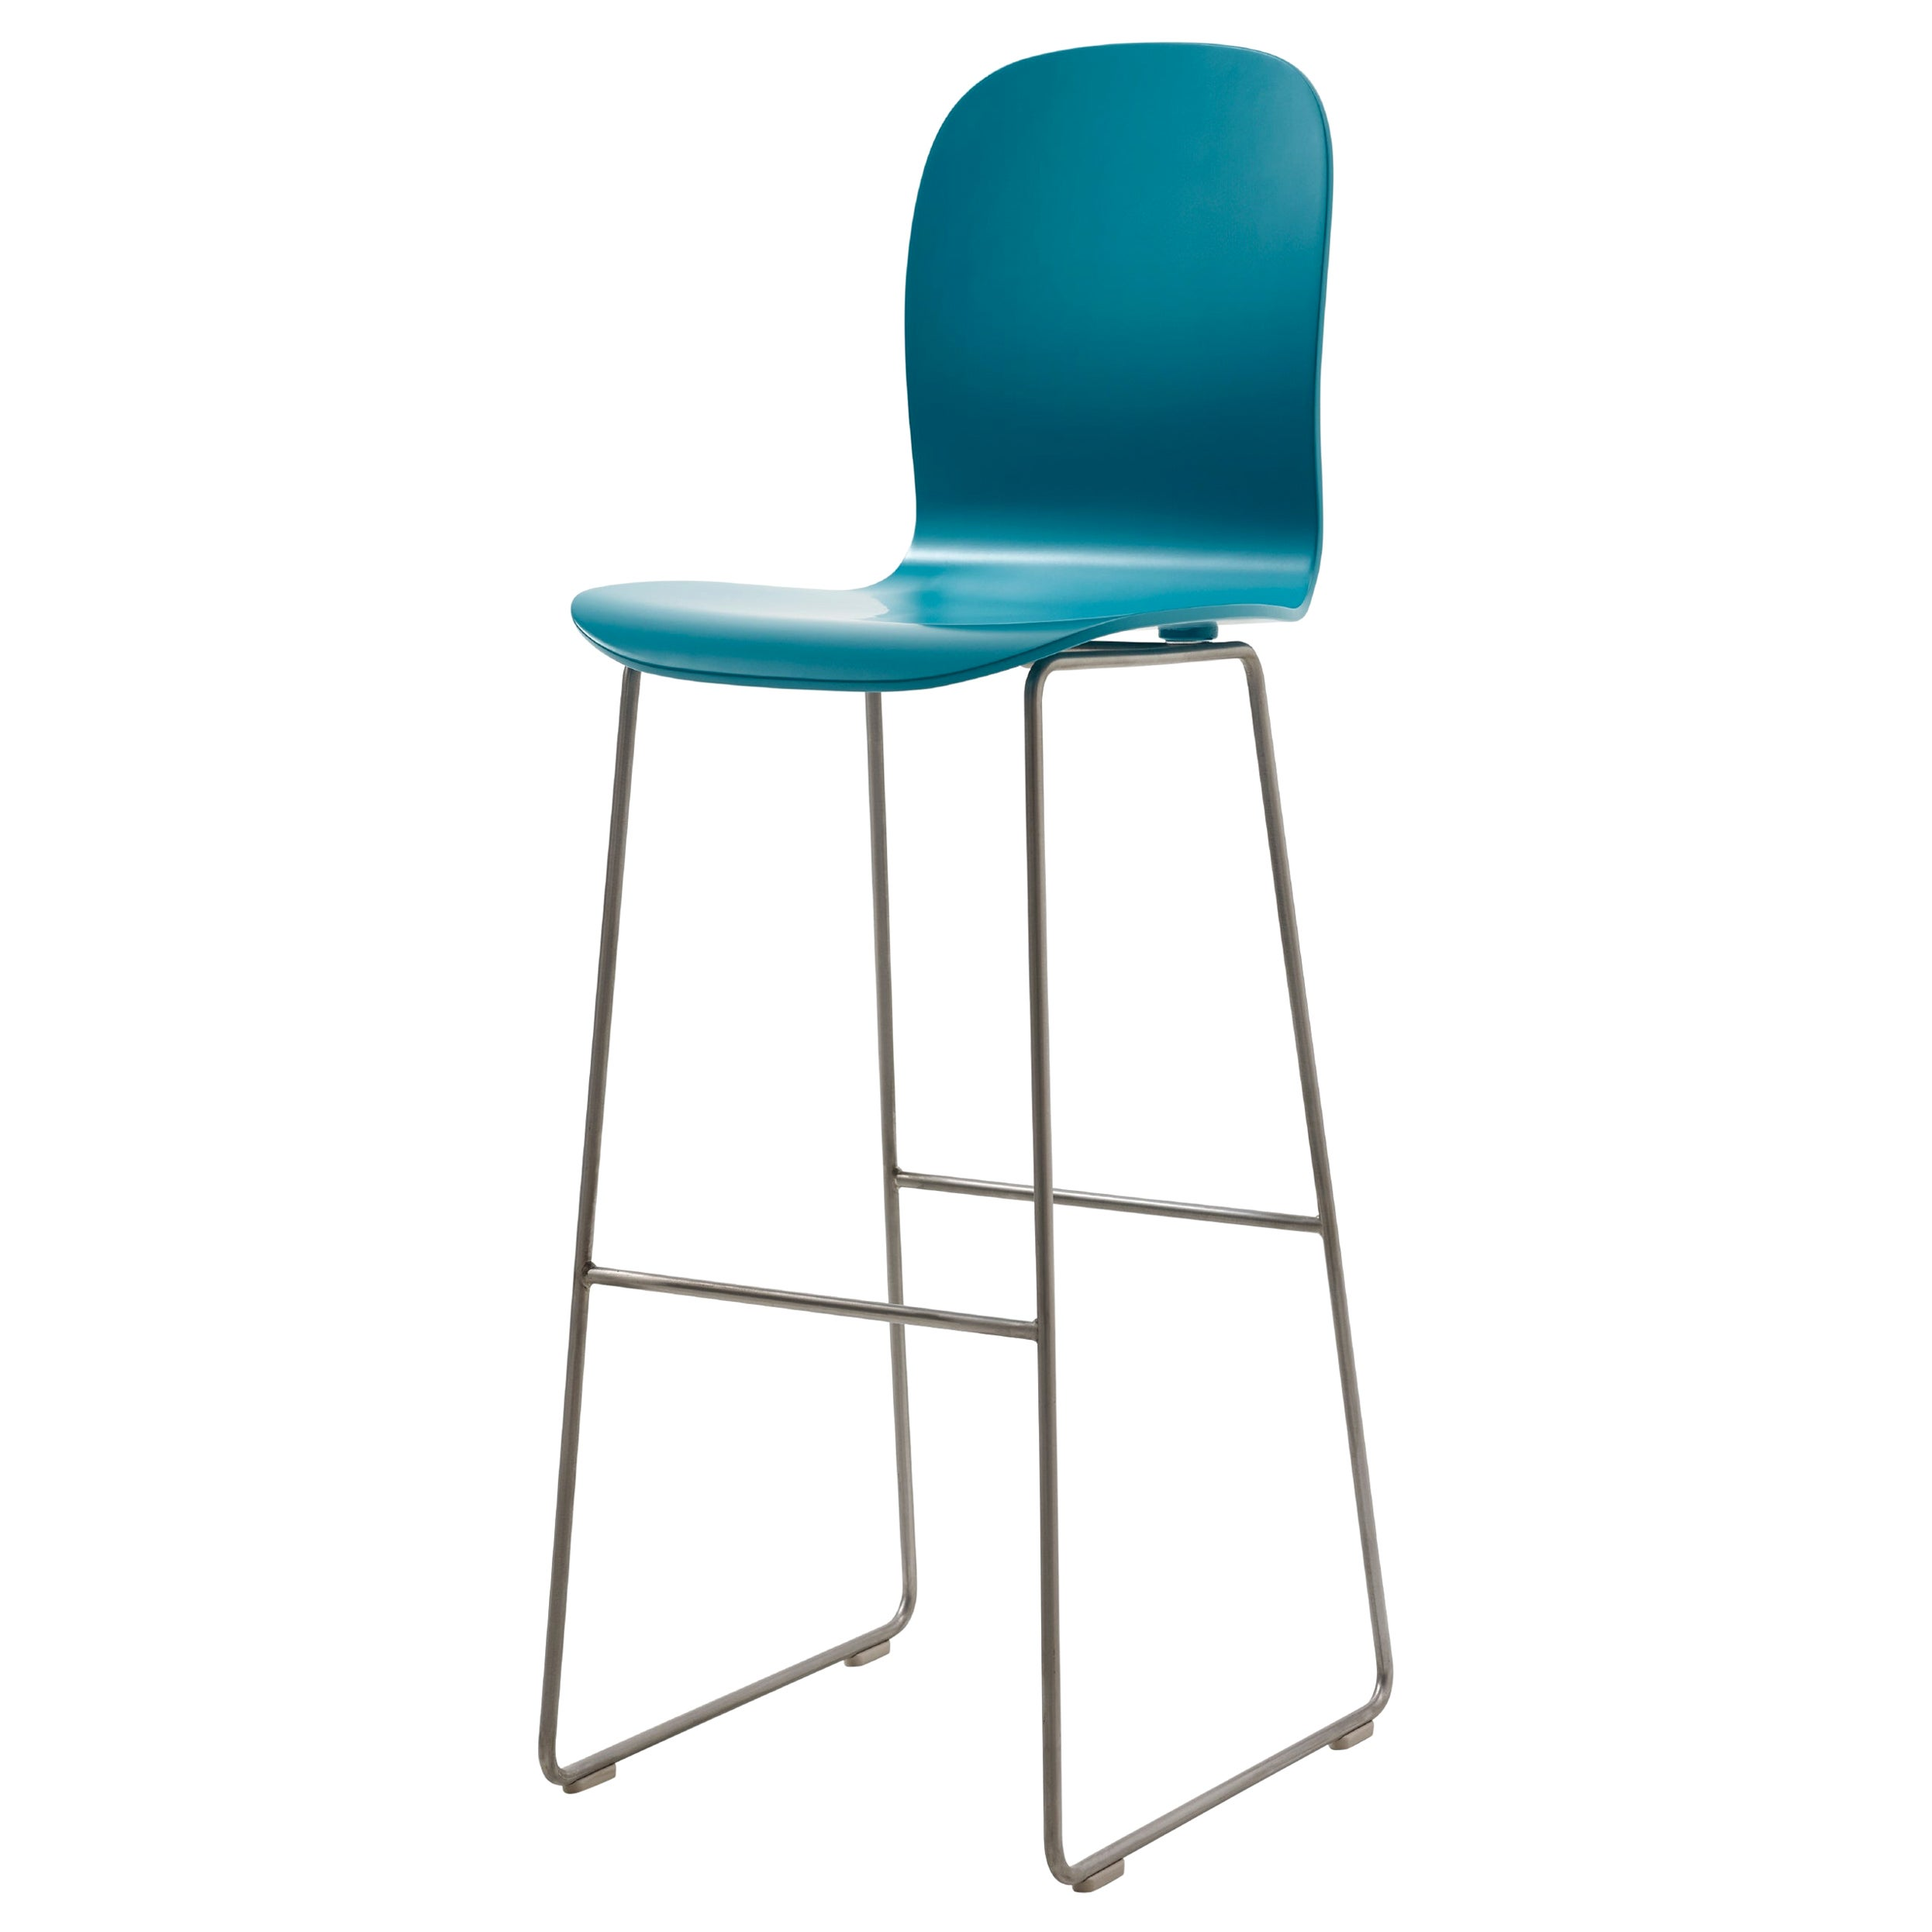 Jasper Morrison Tate Stool in Beech Plywood with Matte Lacquer for Cappellini